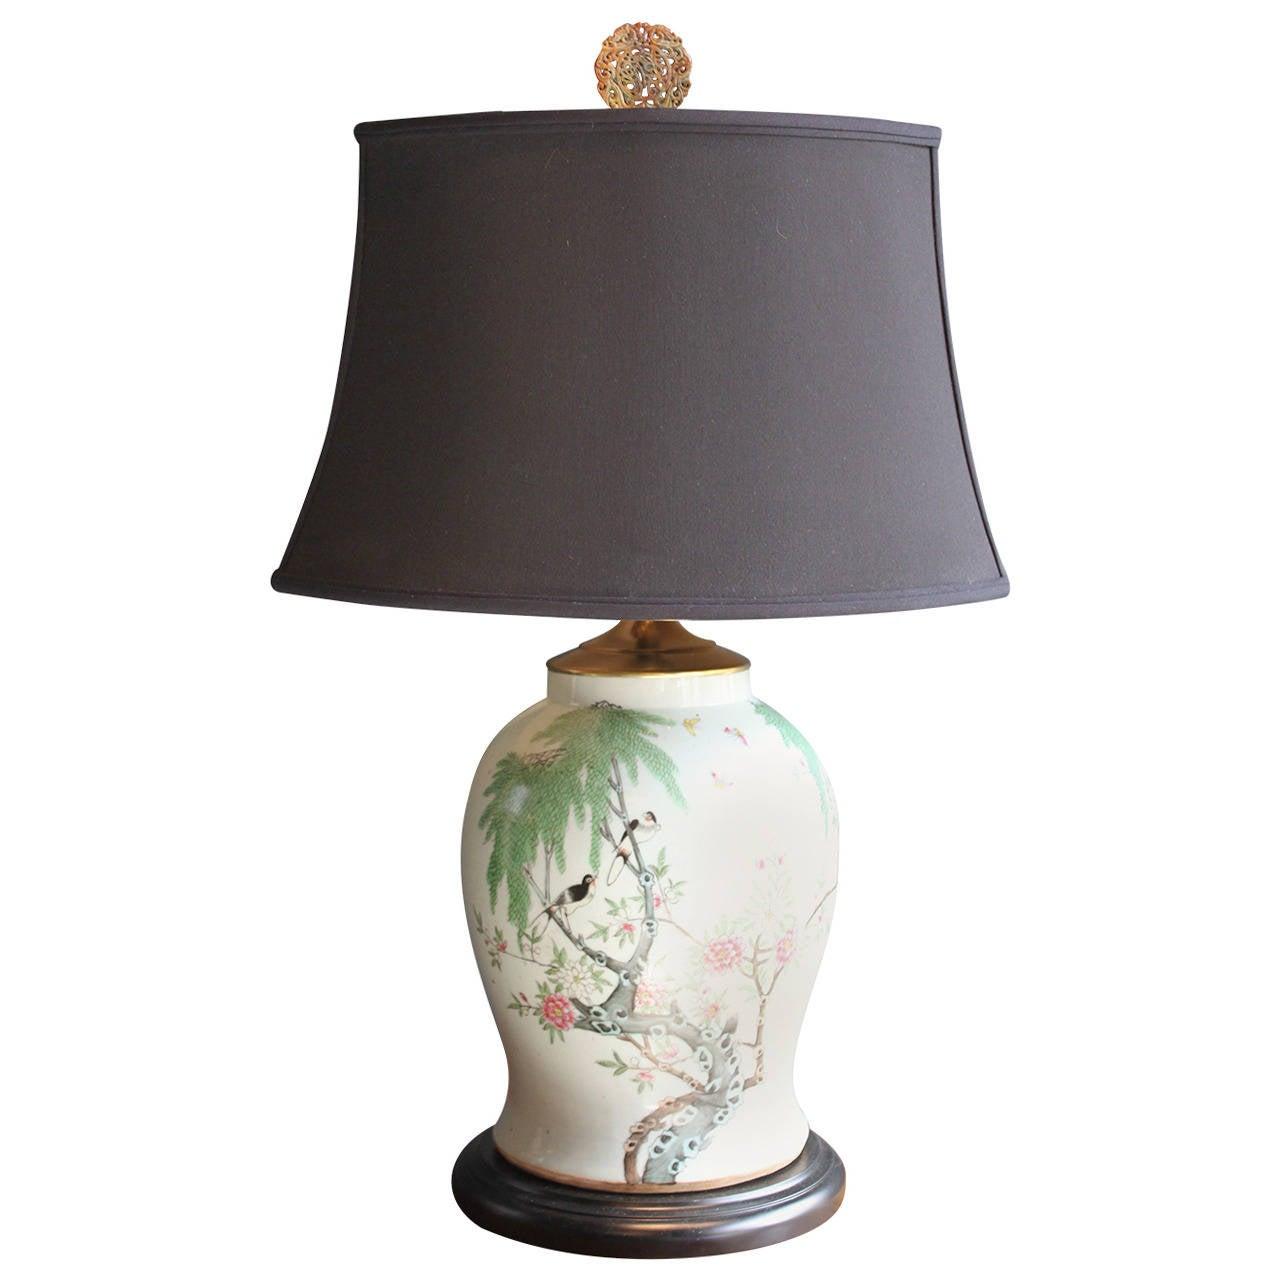 Chinese Ginger Jar Lamp With Painted Scene At 1stdibs